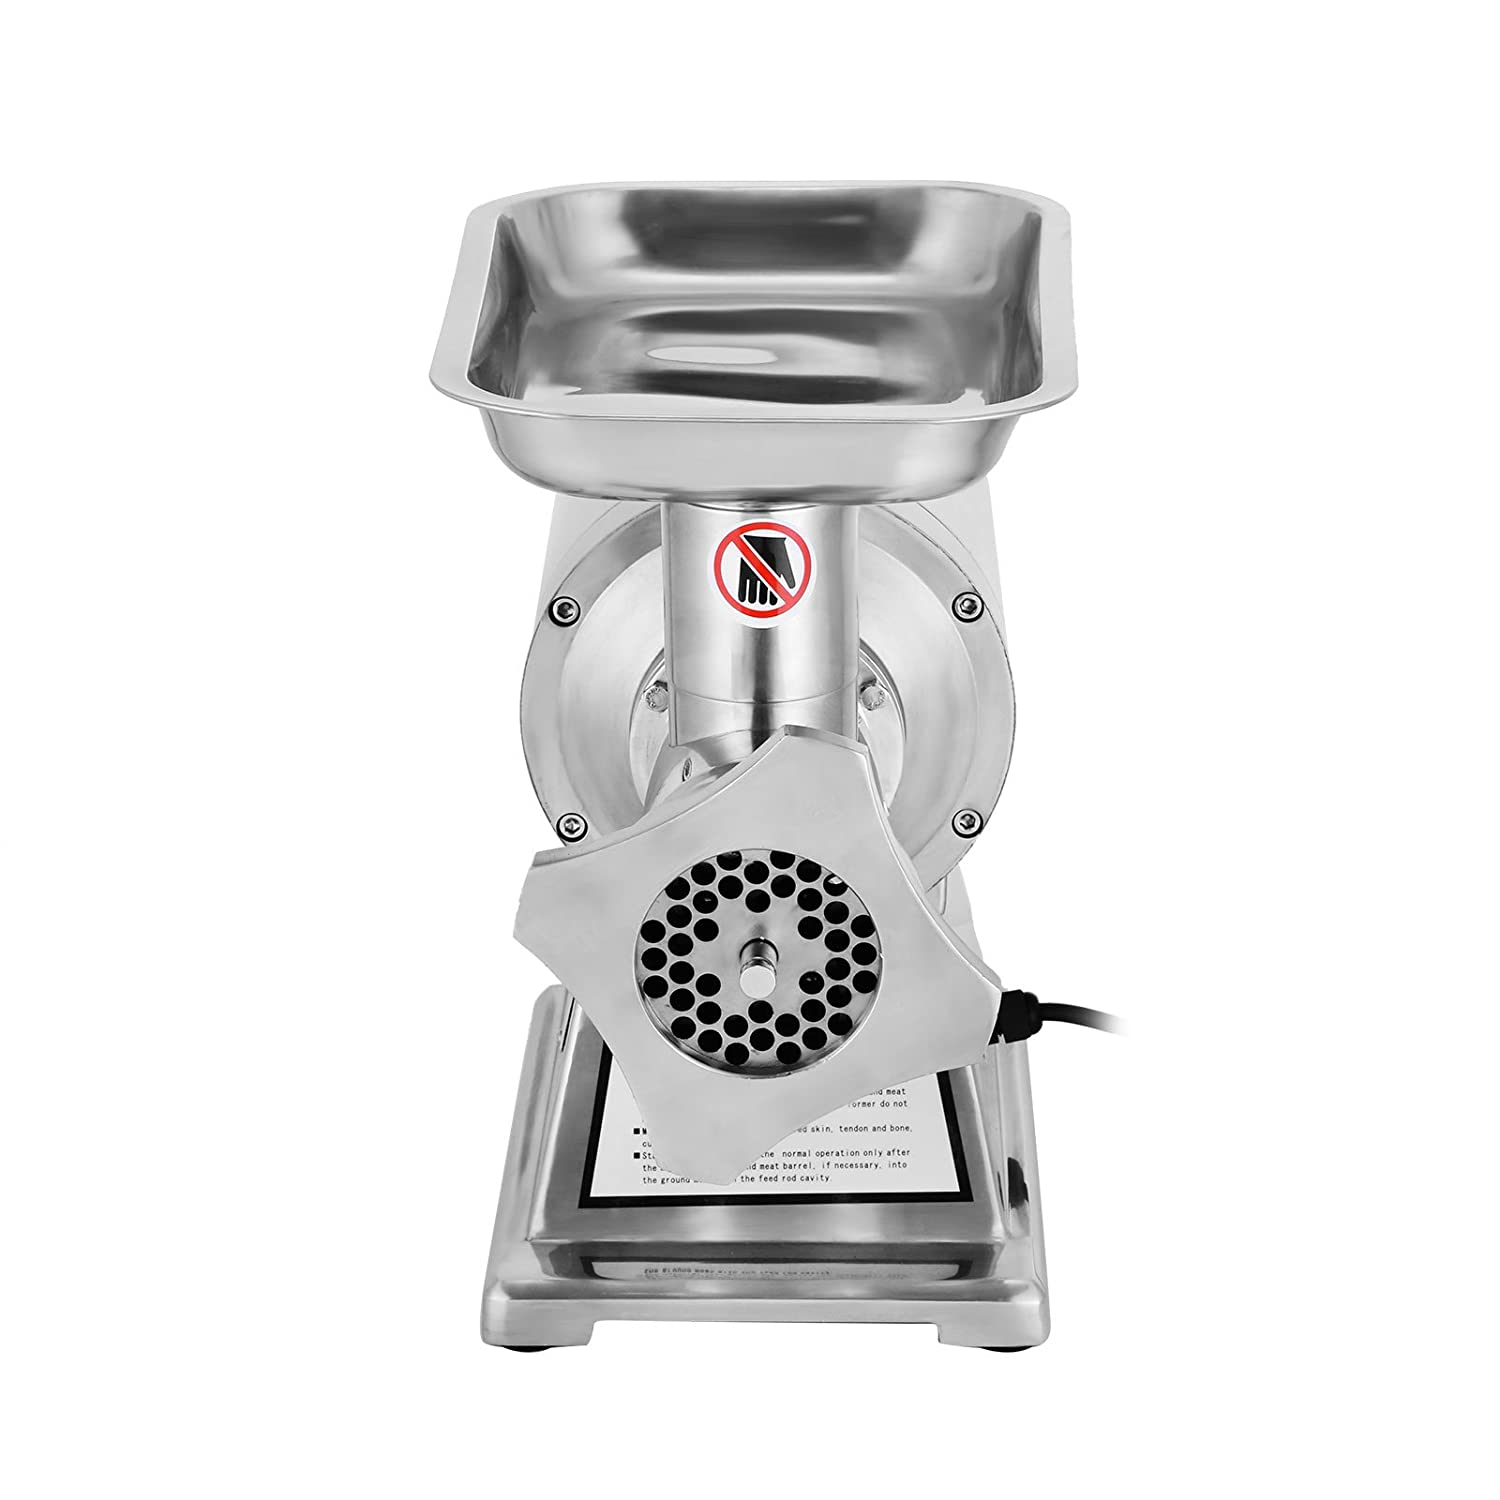 Happybuy Electric Meat Grinder Mincer 1100W Commercial Sausage Stuffer Maker Stainless Steel 220 RPM 1.5HP for Industrial and Home Use